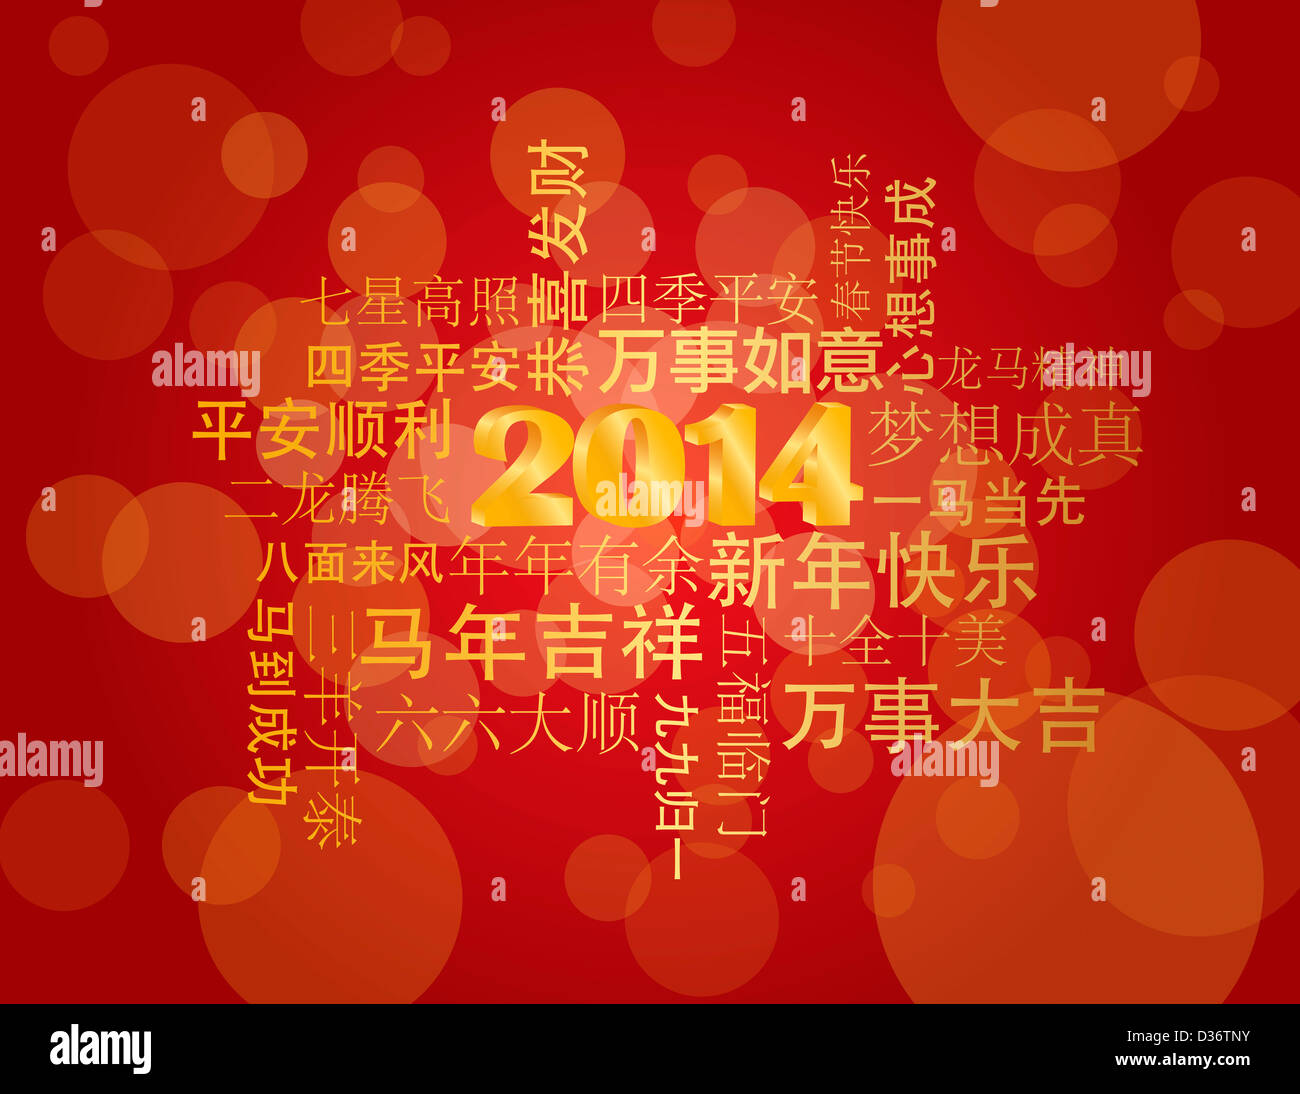 Quotes Chinese New Year Wishes: 2014 Happy Chinese Lunar New Year Well Wishes And